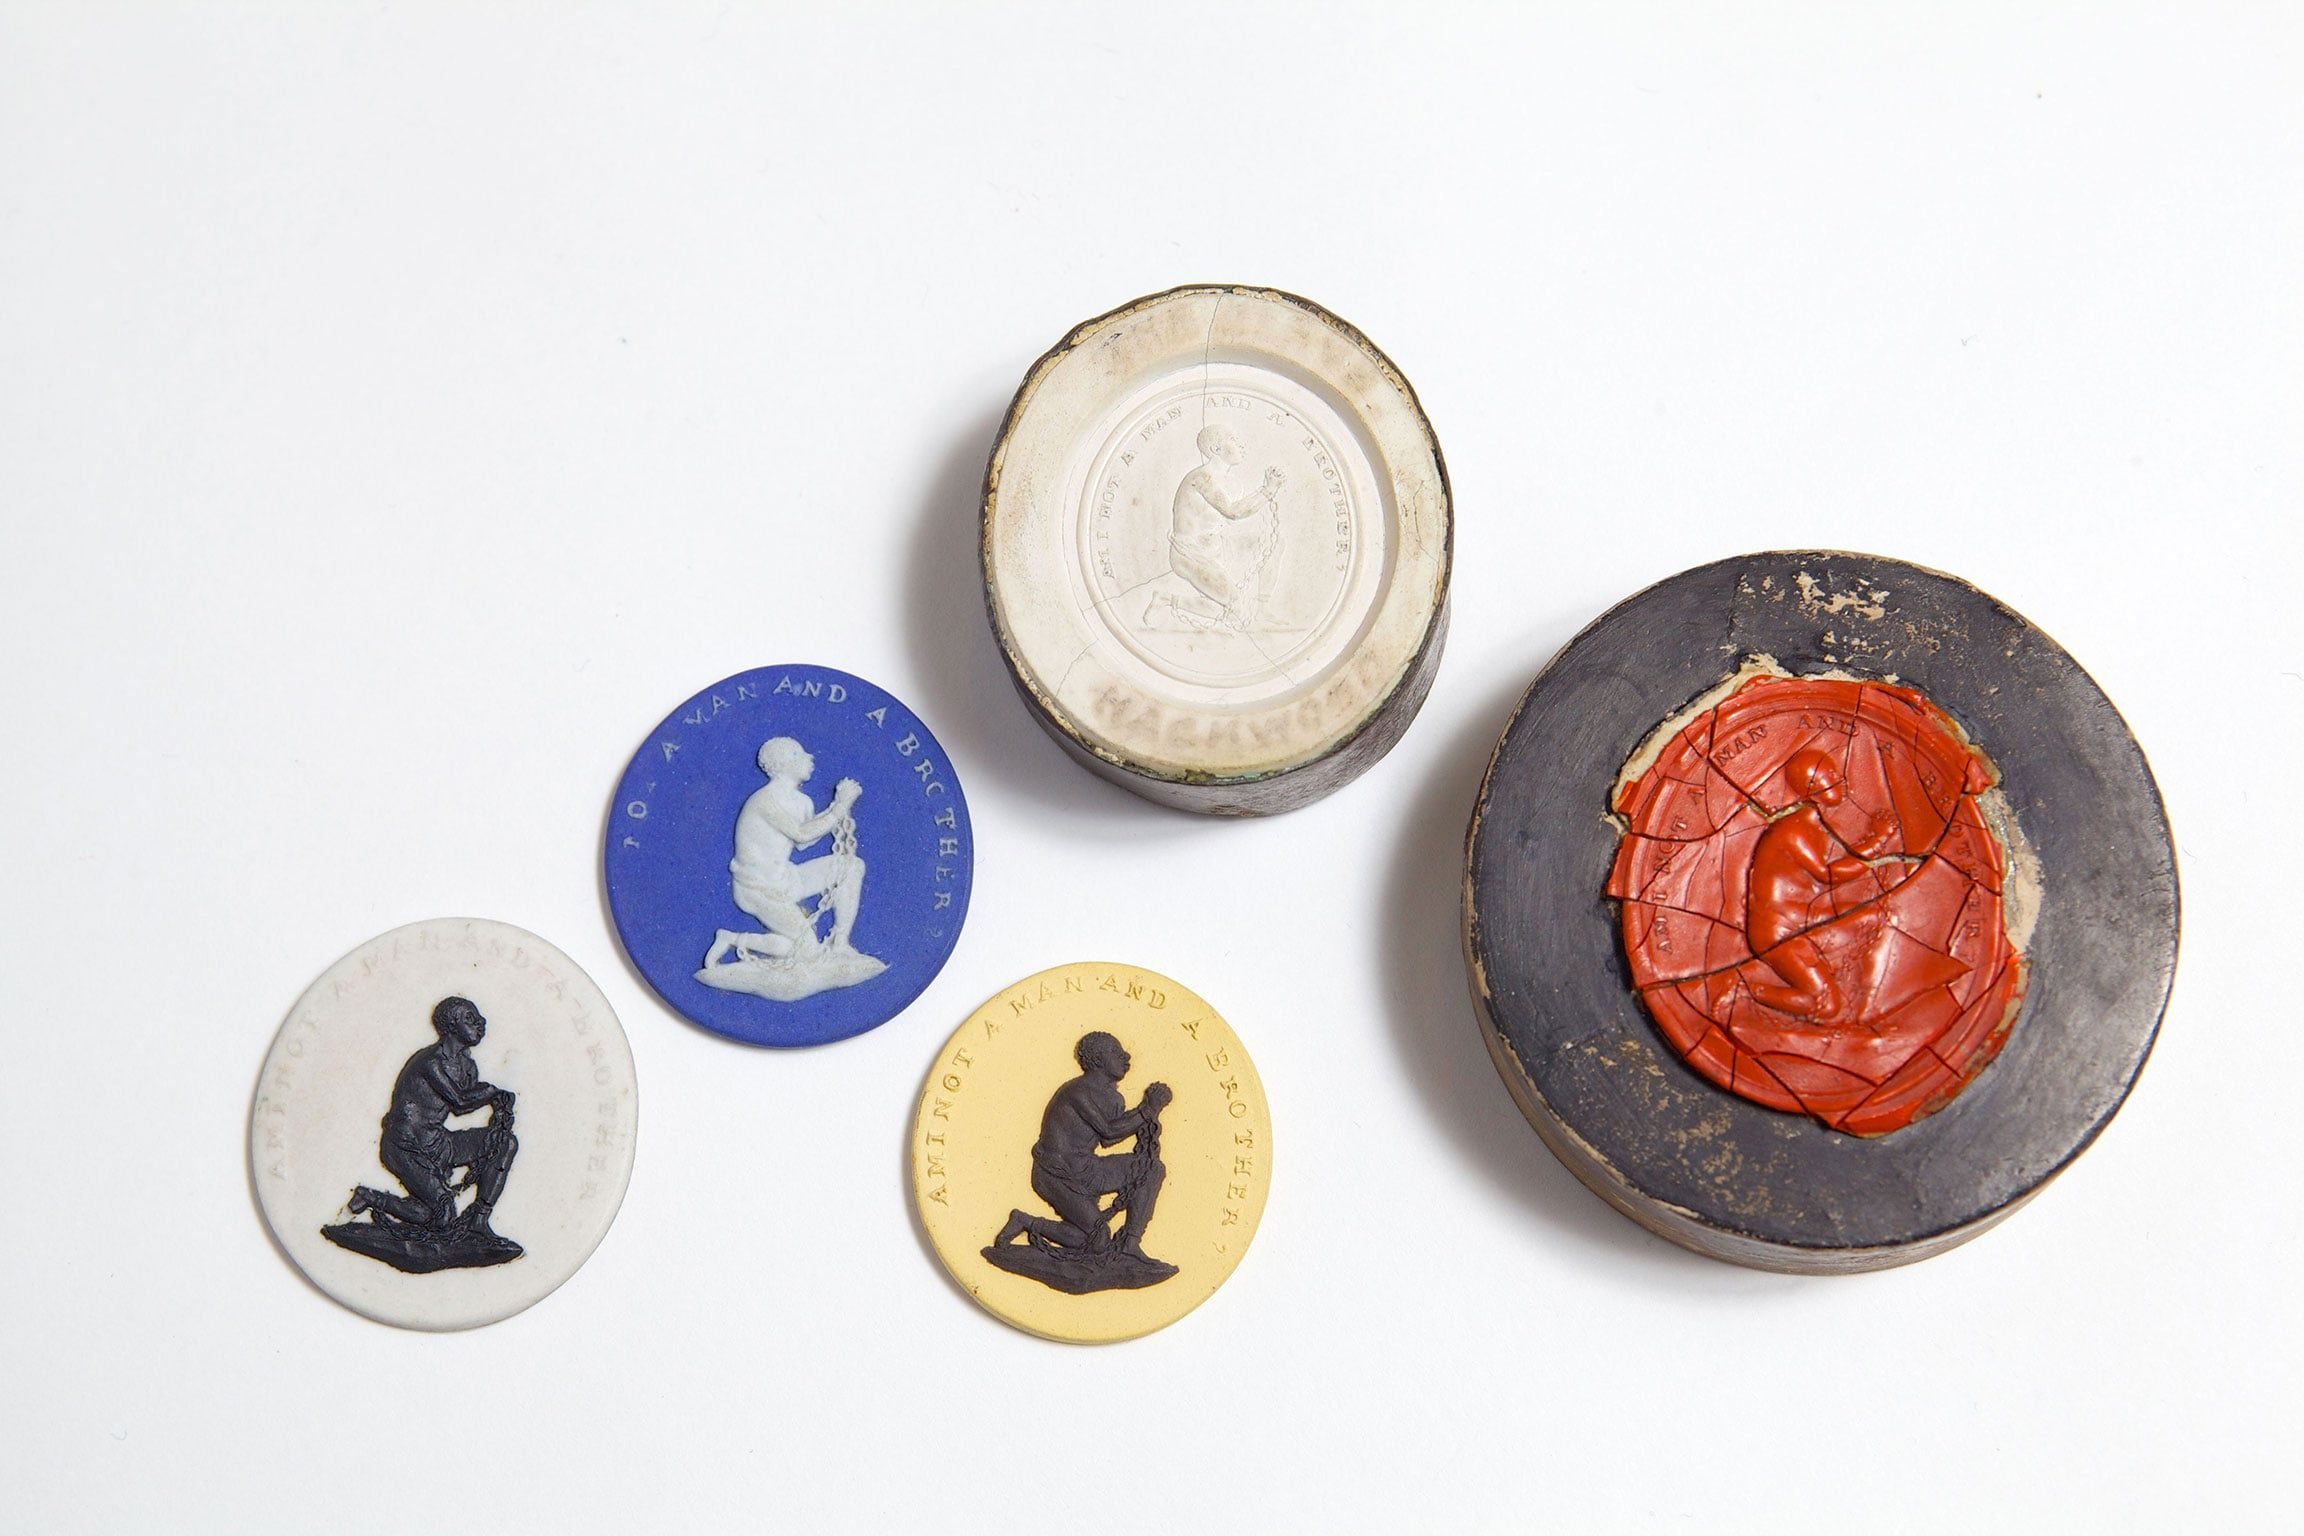 How Wedgwood Played a Role In the Anti-Slavery Movement More Than 250 Years Ago